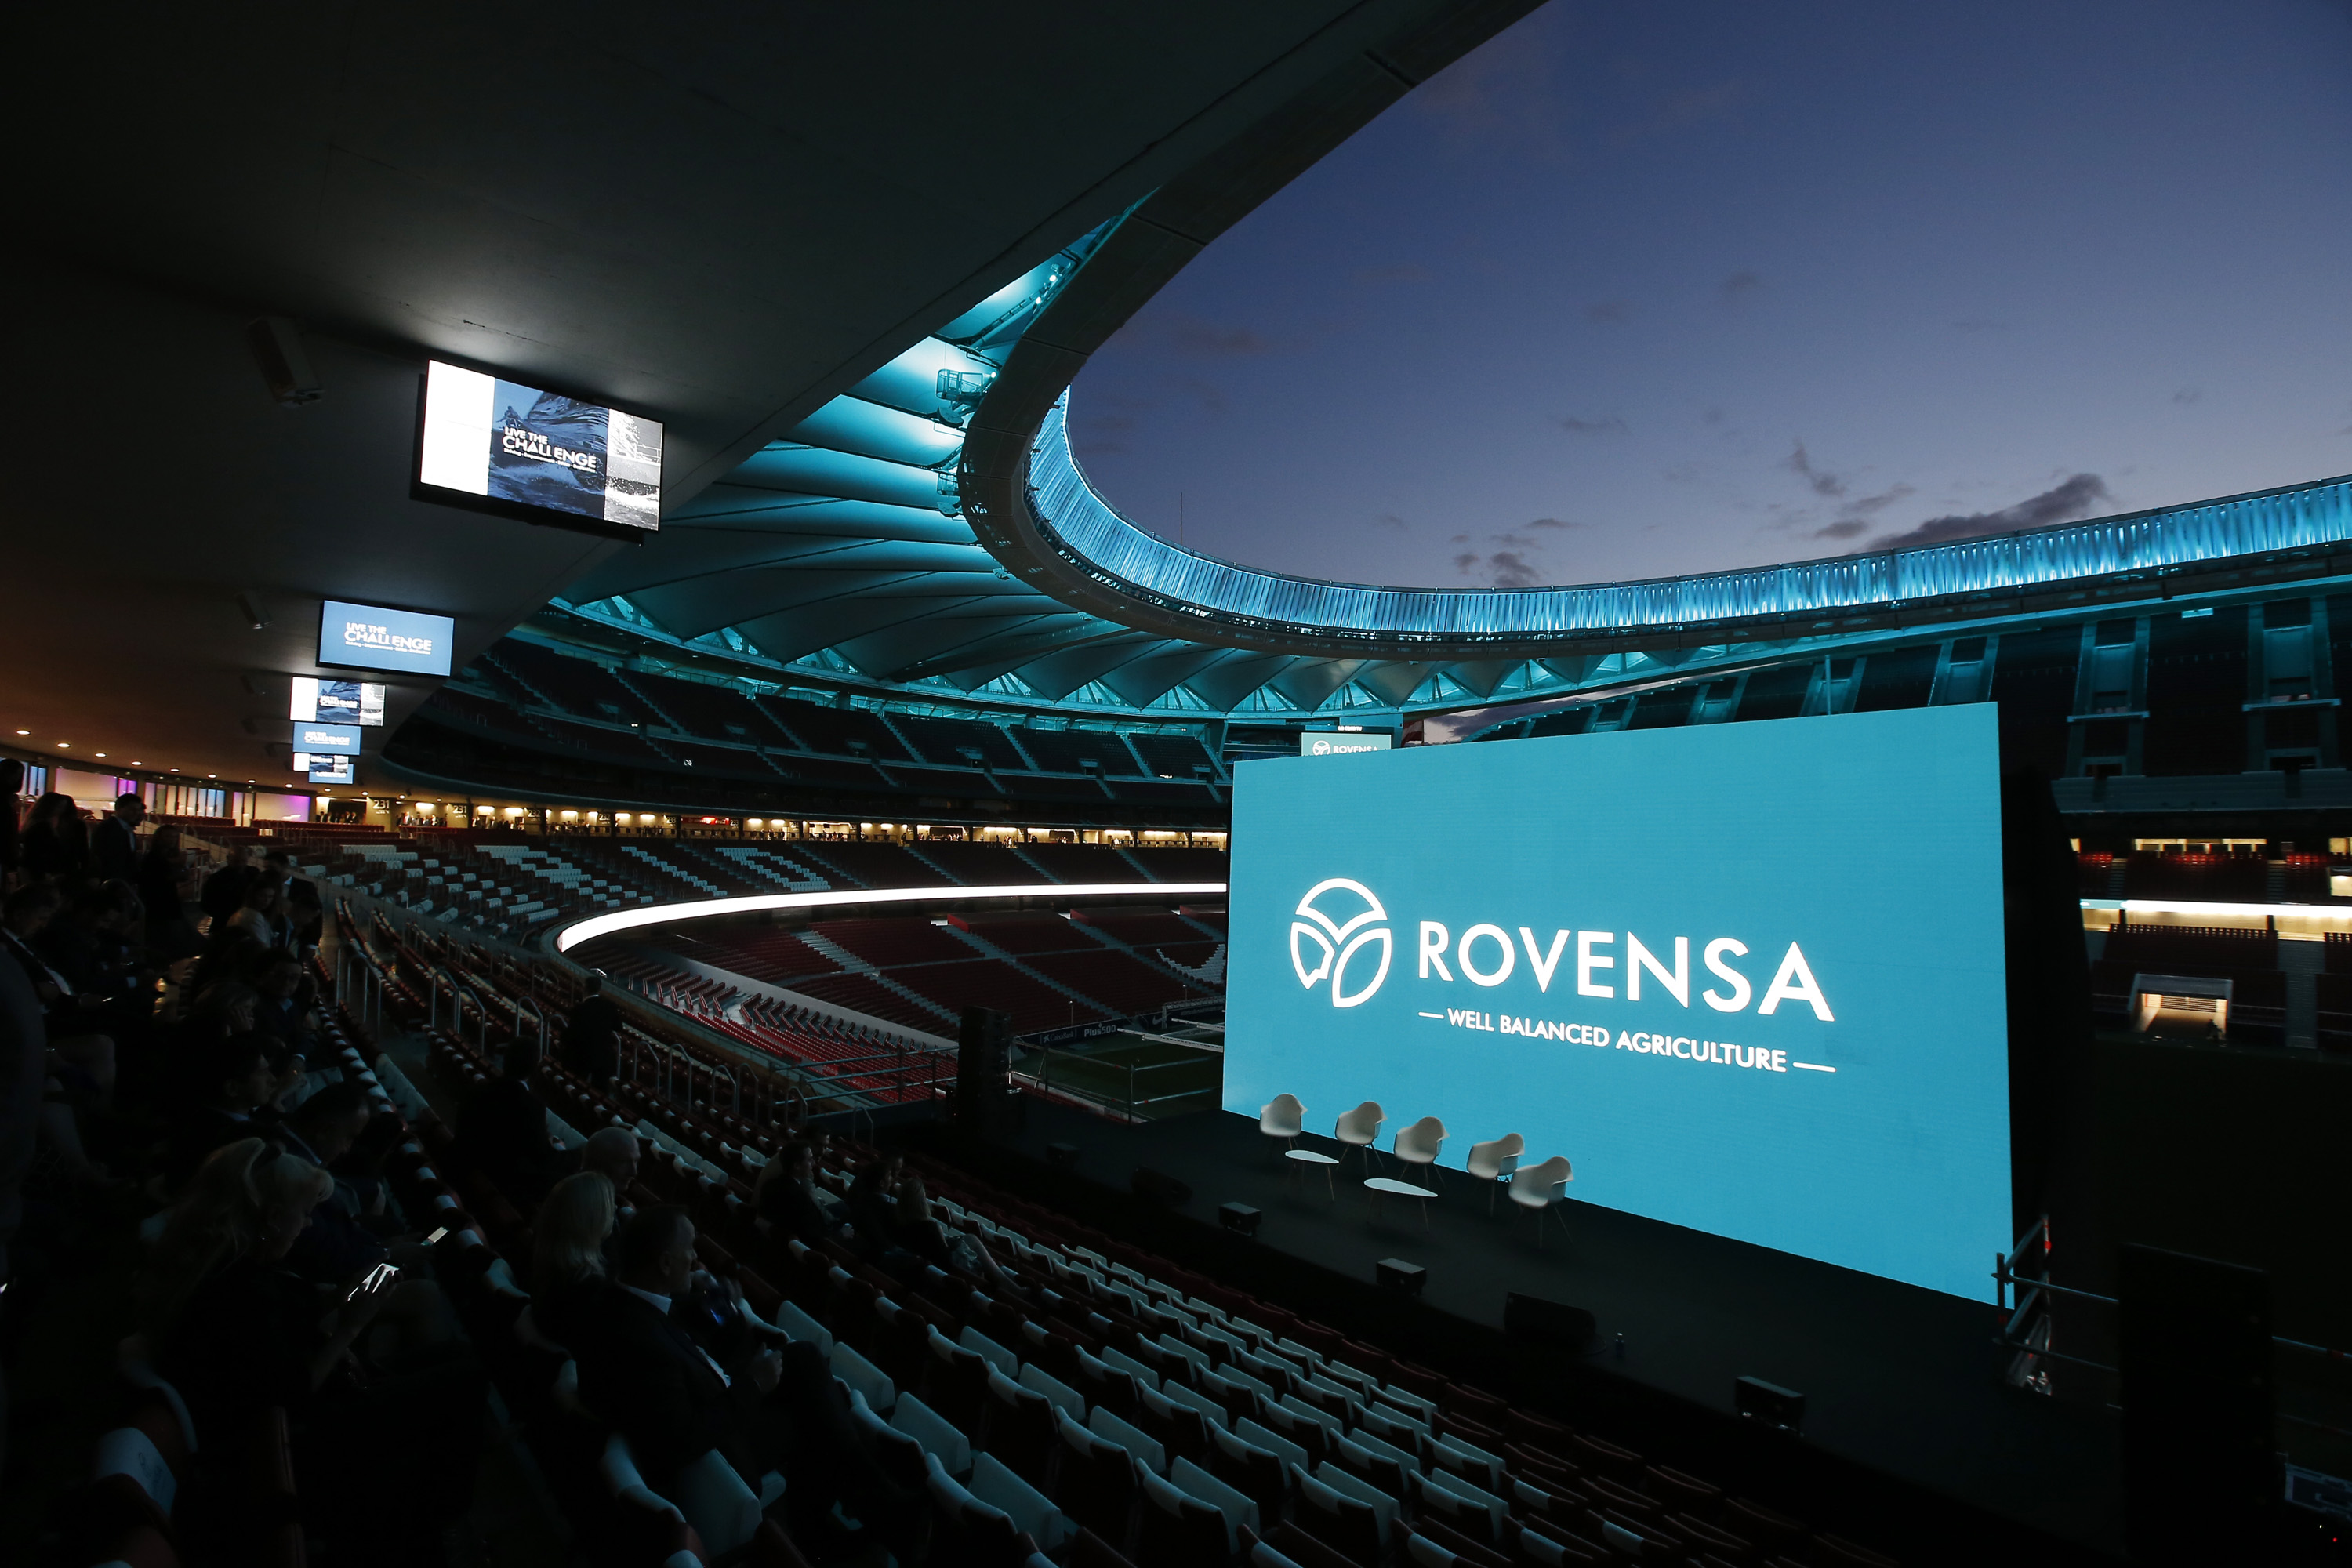 Rovensa Group